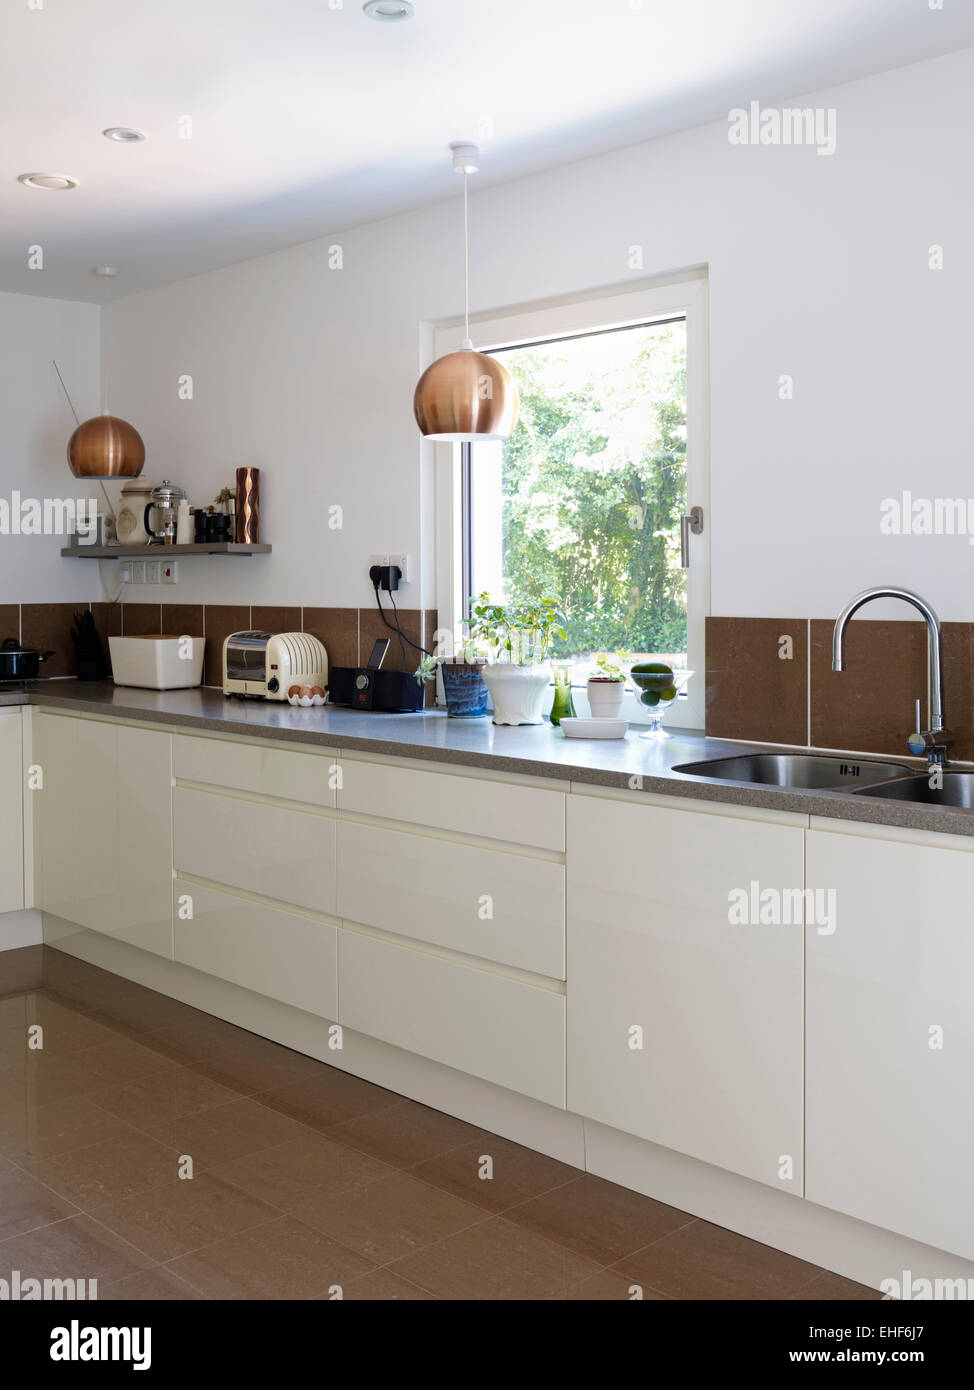 Double Kitchen Sink Stockfotos & Double Kitchen Sink Bilder - Alamy